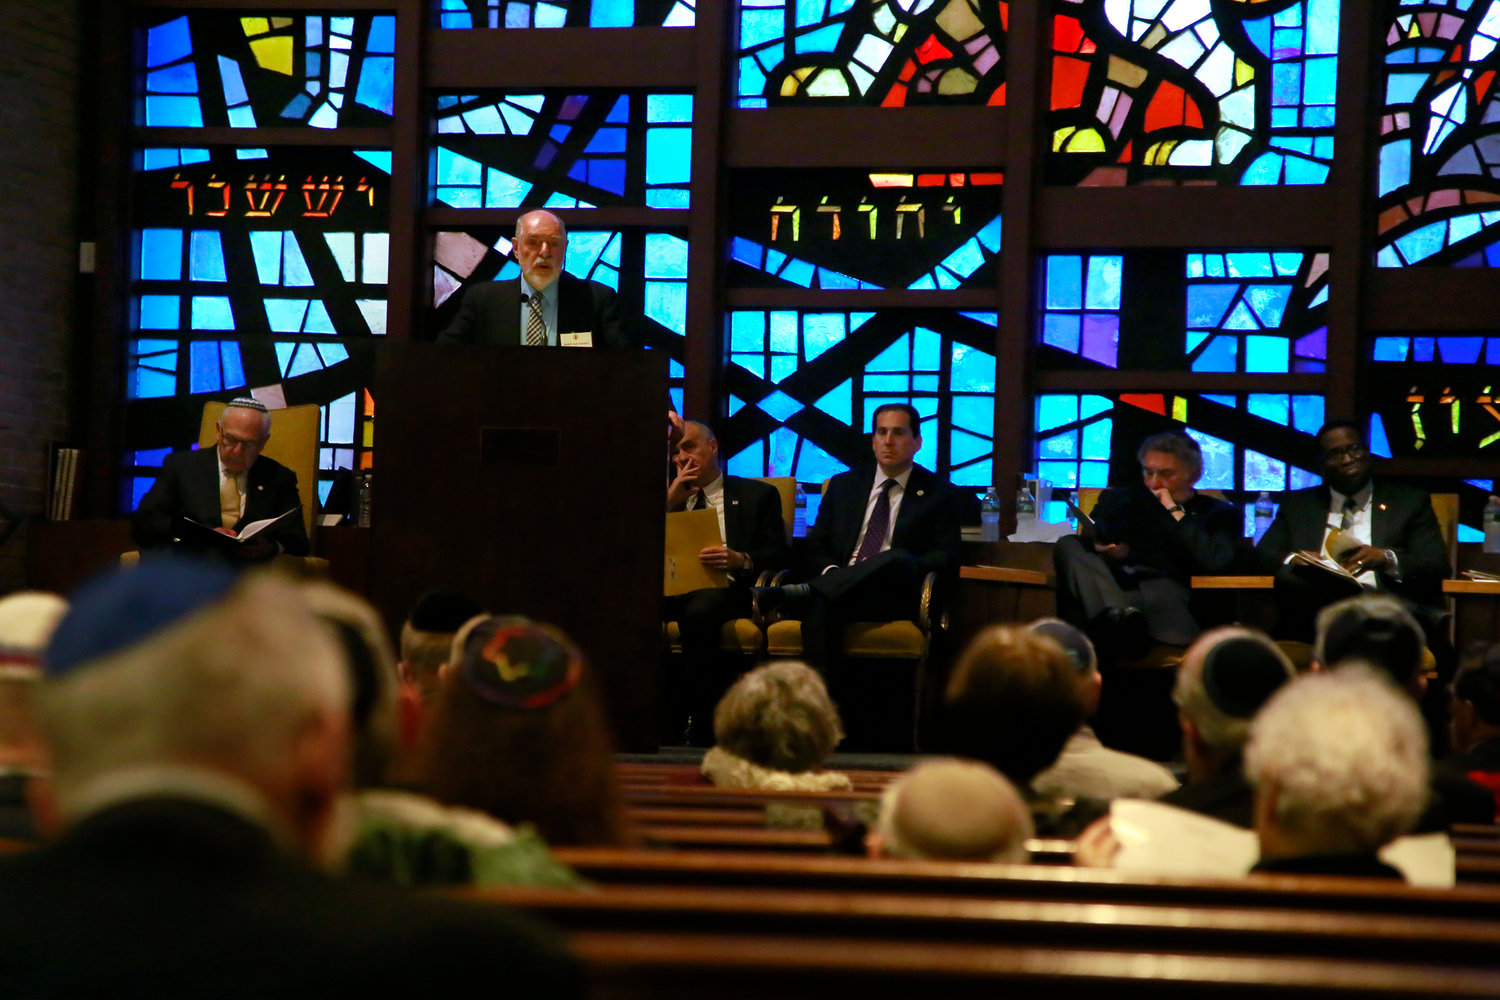 Rabbi Art Vernon, spiritual leader of Congregation Shaaray Shalom, spoke about the importance of reflecting on anniversaries such as the 80th anniversary of the start of World War II. He said doing so helps people gain perspective.